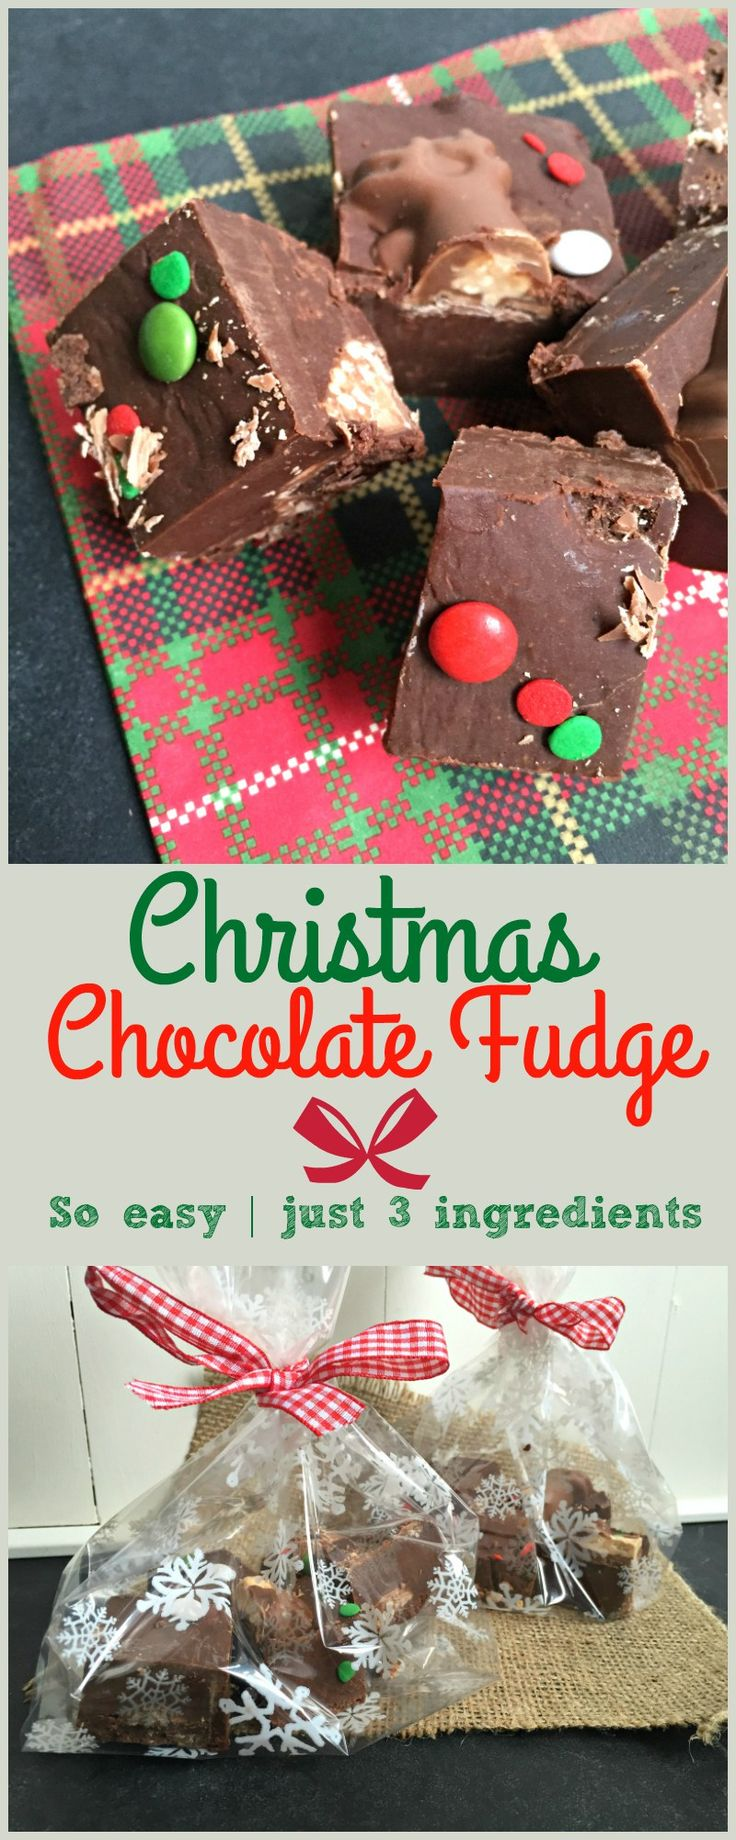 Fast and easy Christmas food gifts to make - Easy Malteser Reindeer Chocolate Fudge